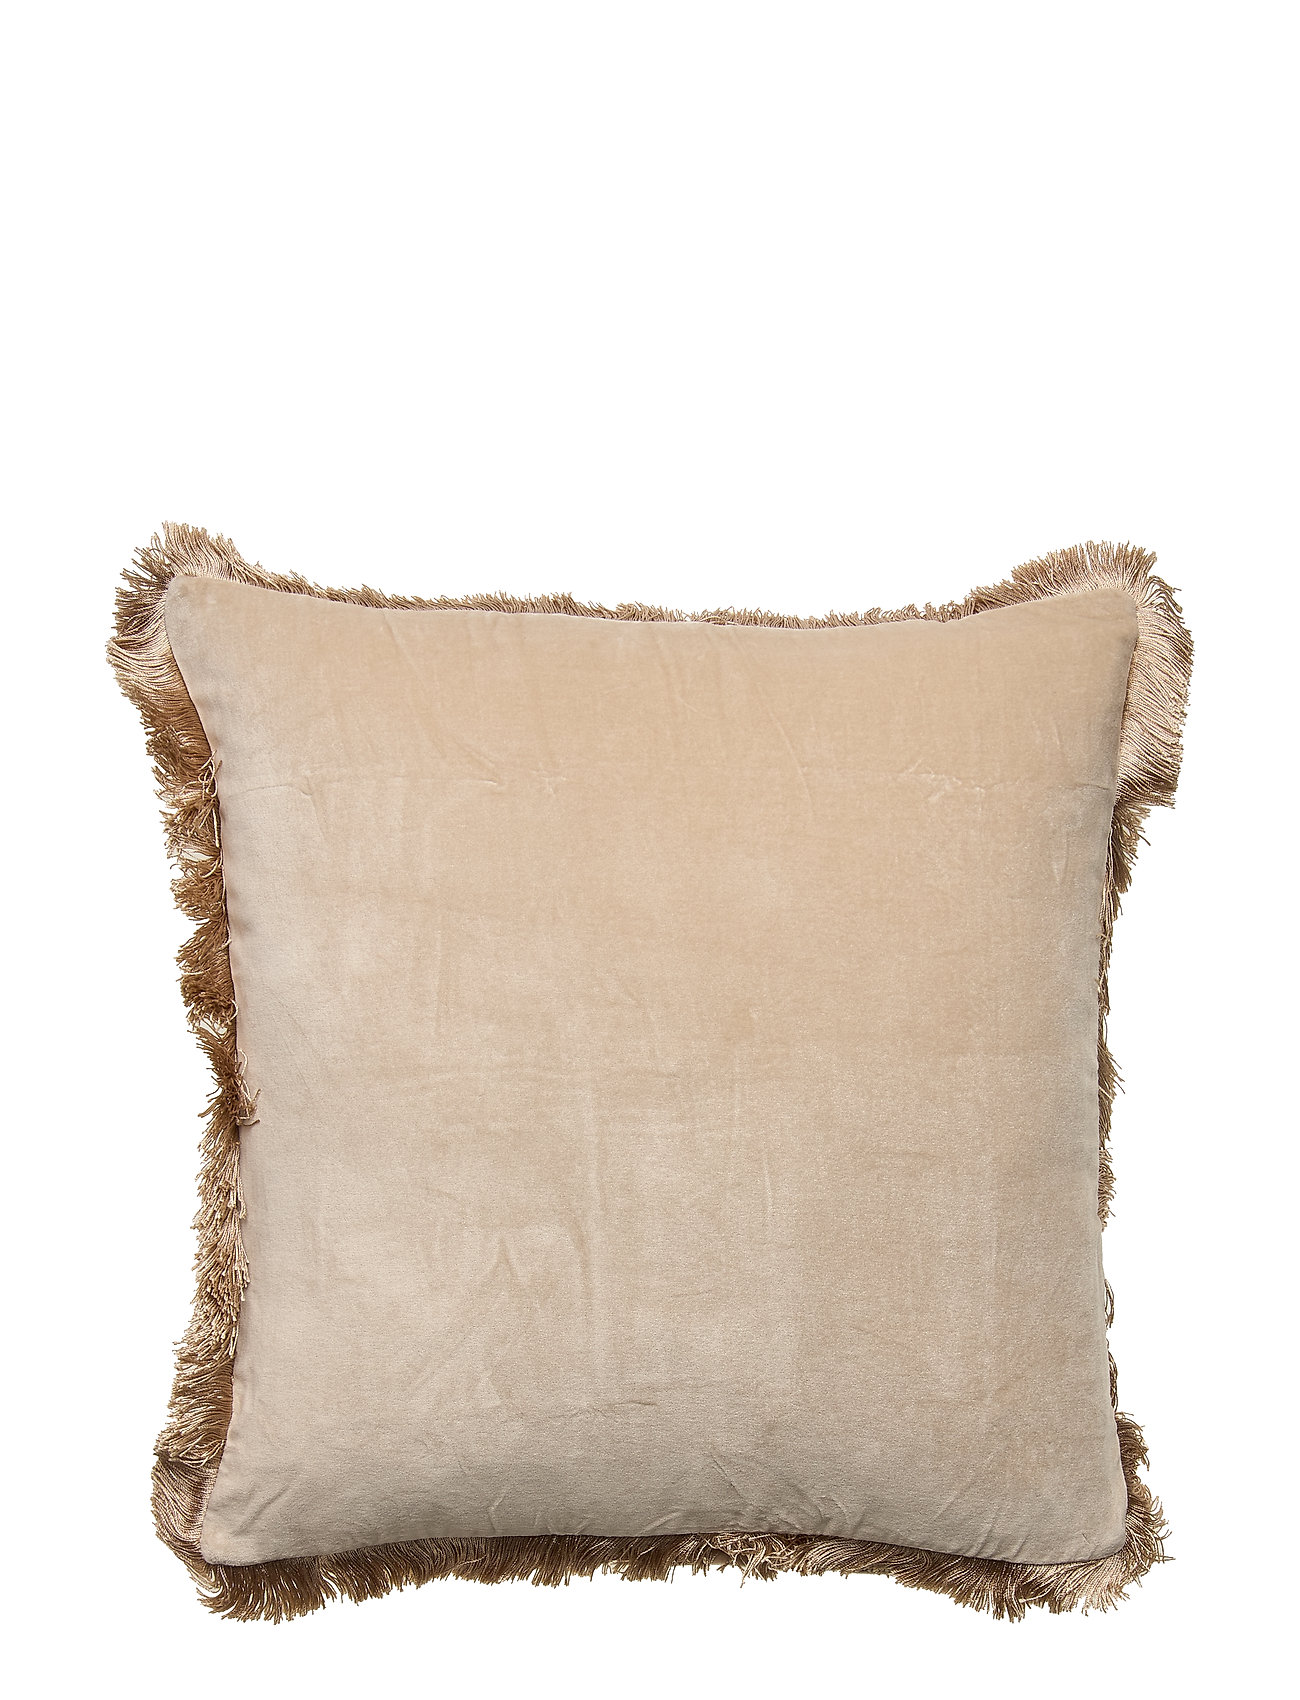 DAY Home Day Classic Velvet Cushion Cover Concrete with Fringes - CONCRETE